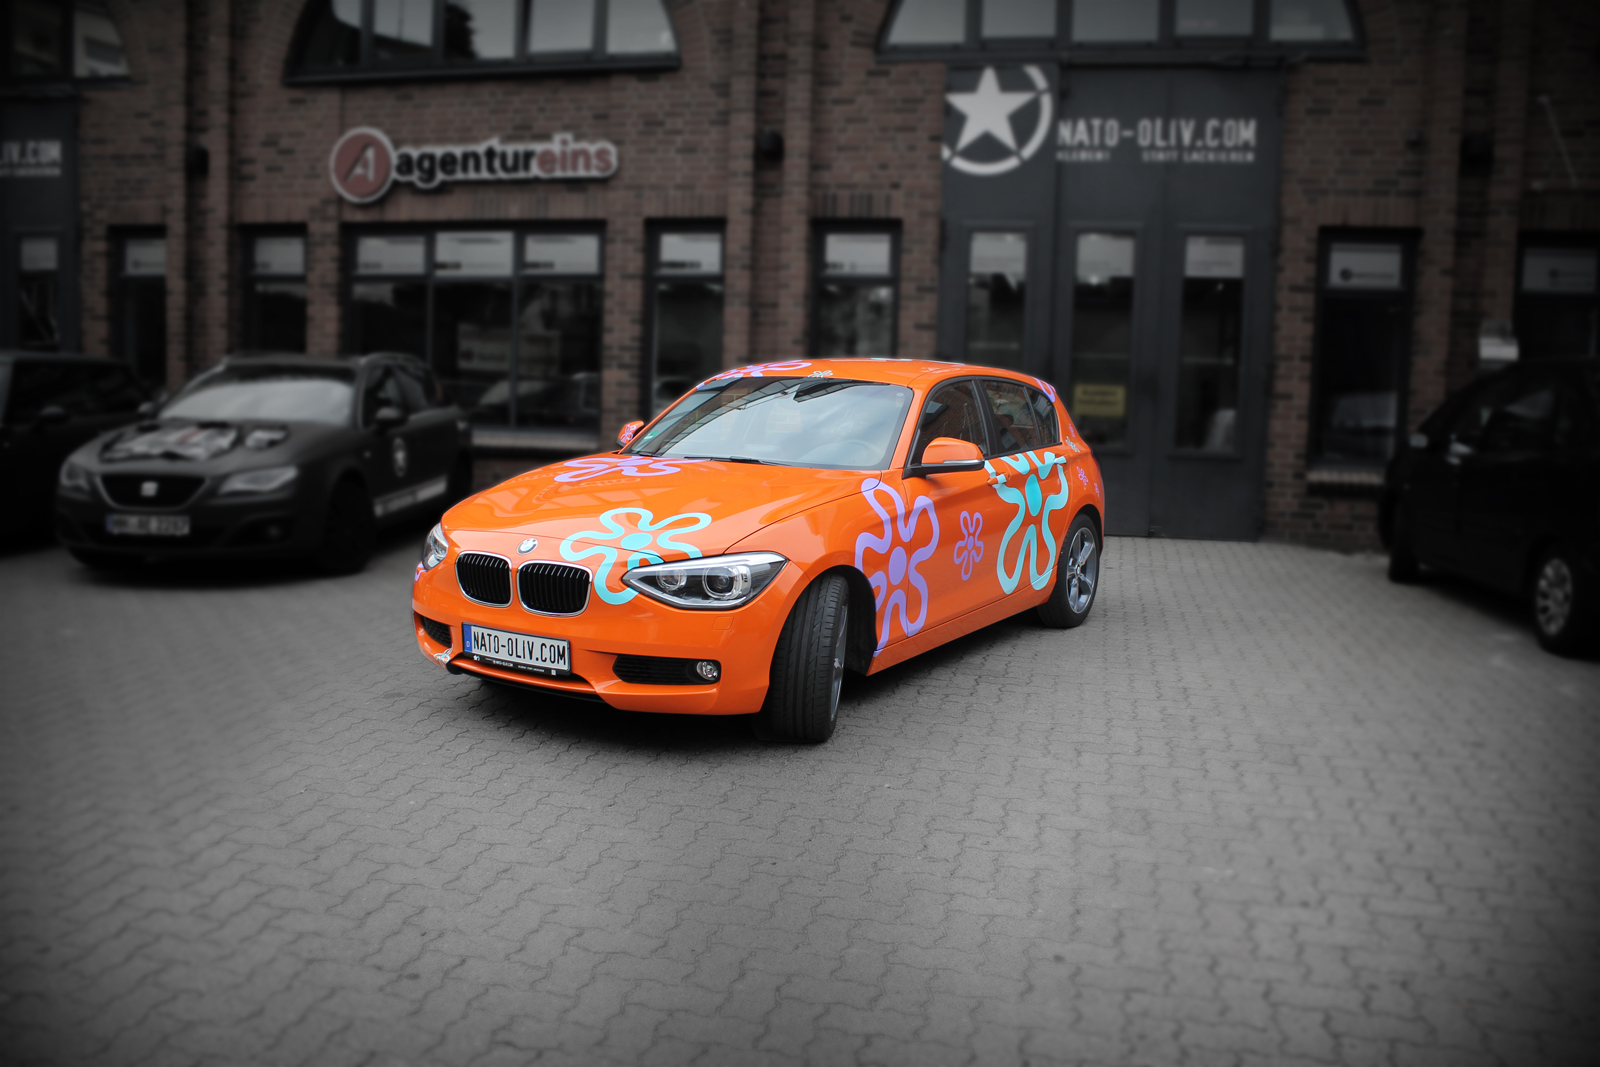 Car Wrapping BMW 1er mit Folie in Orange und Blumen in türkis und lila